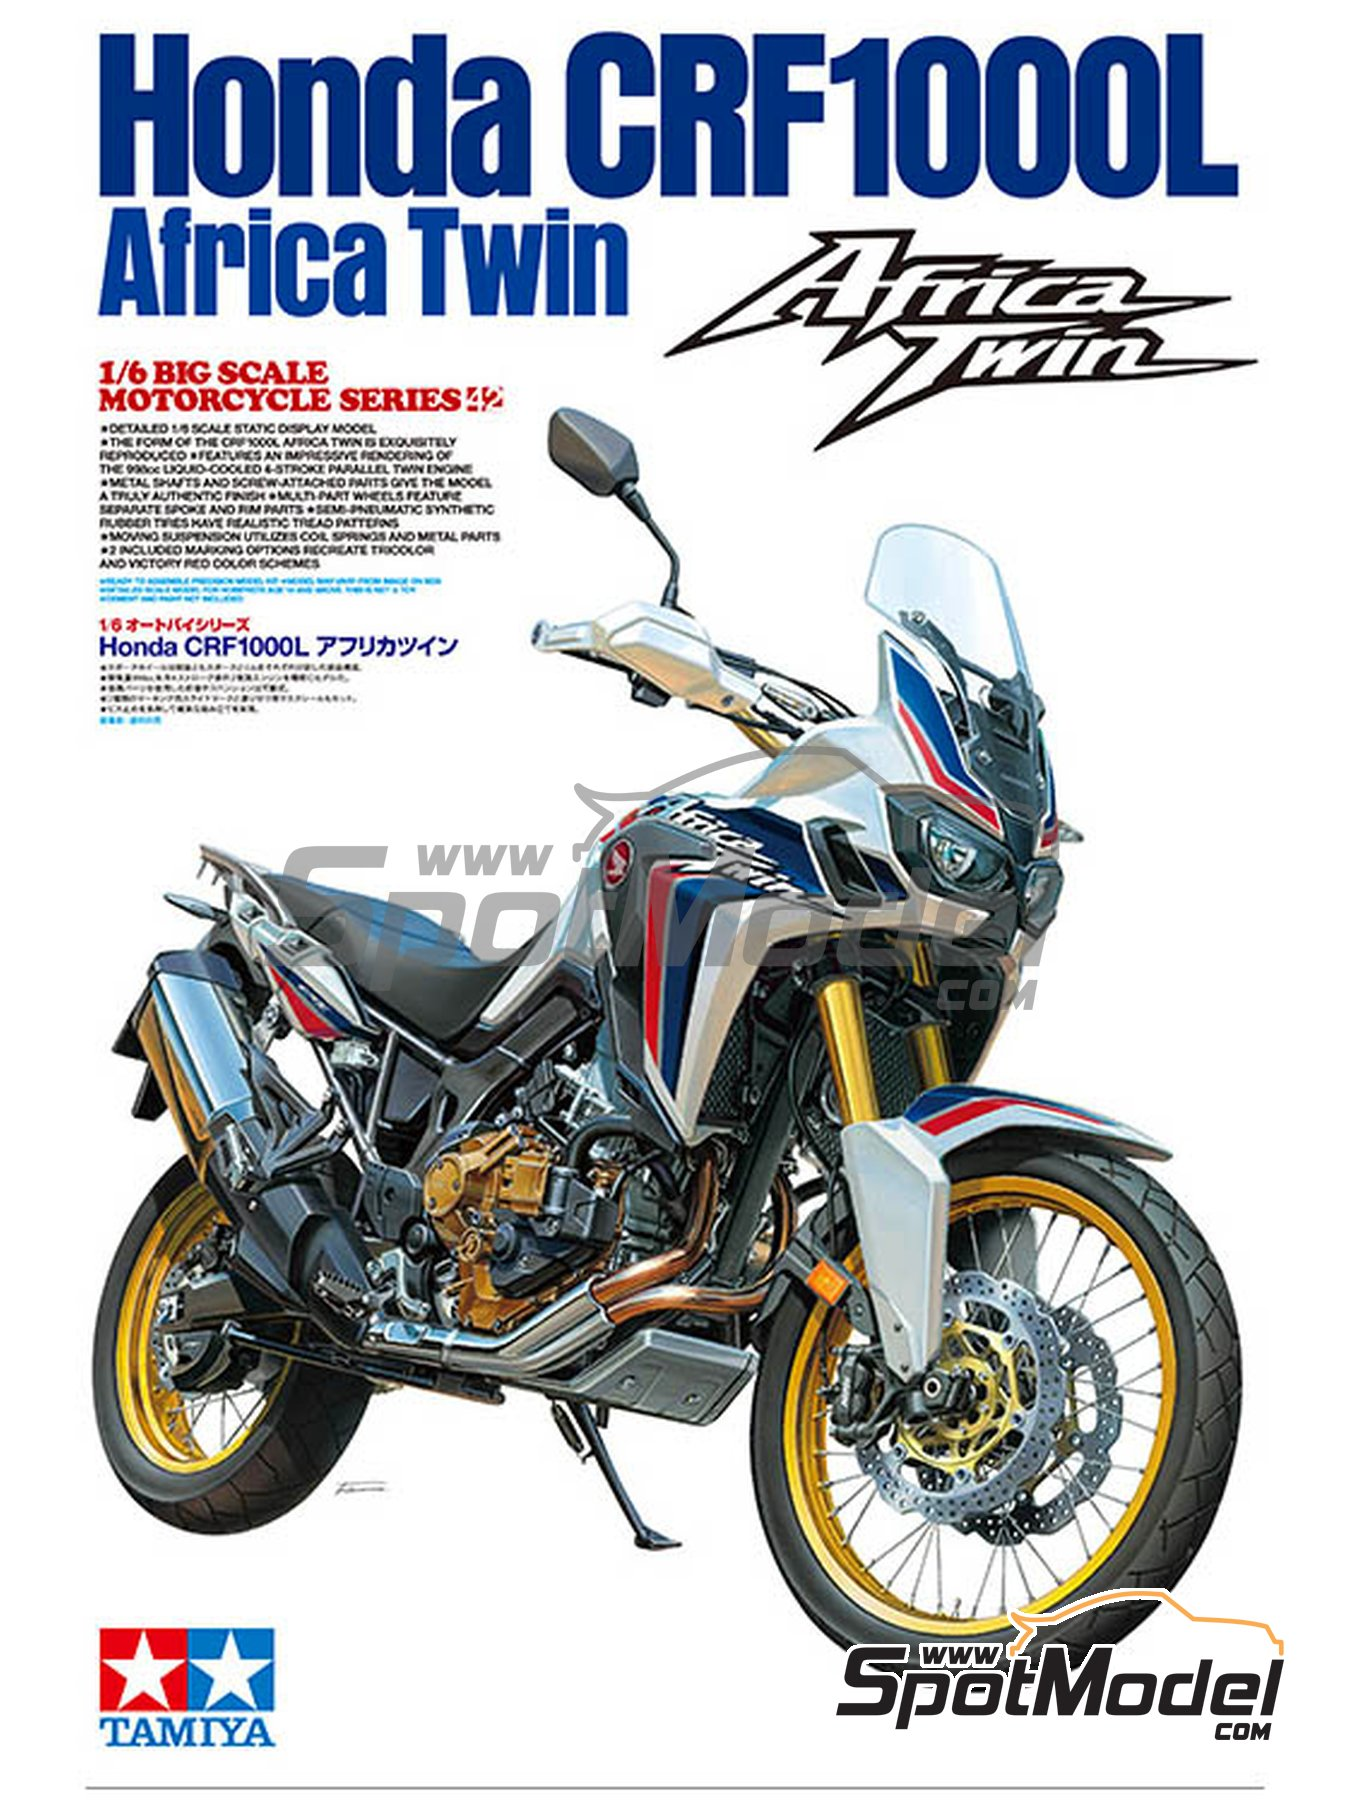 Honda CRF 1000L Africa Twin Enduro | Model bike kit in 1/6 scale manufactured by Tamiya (ref. TAM16042, also 16042) image